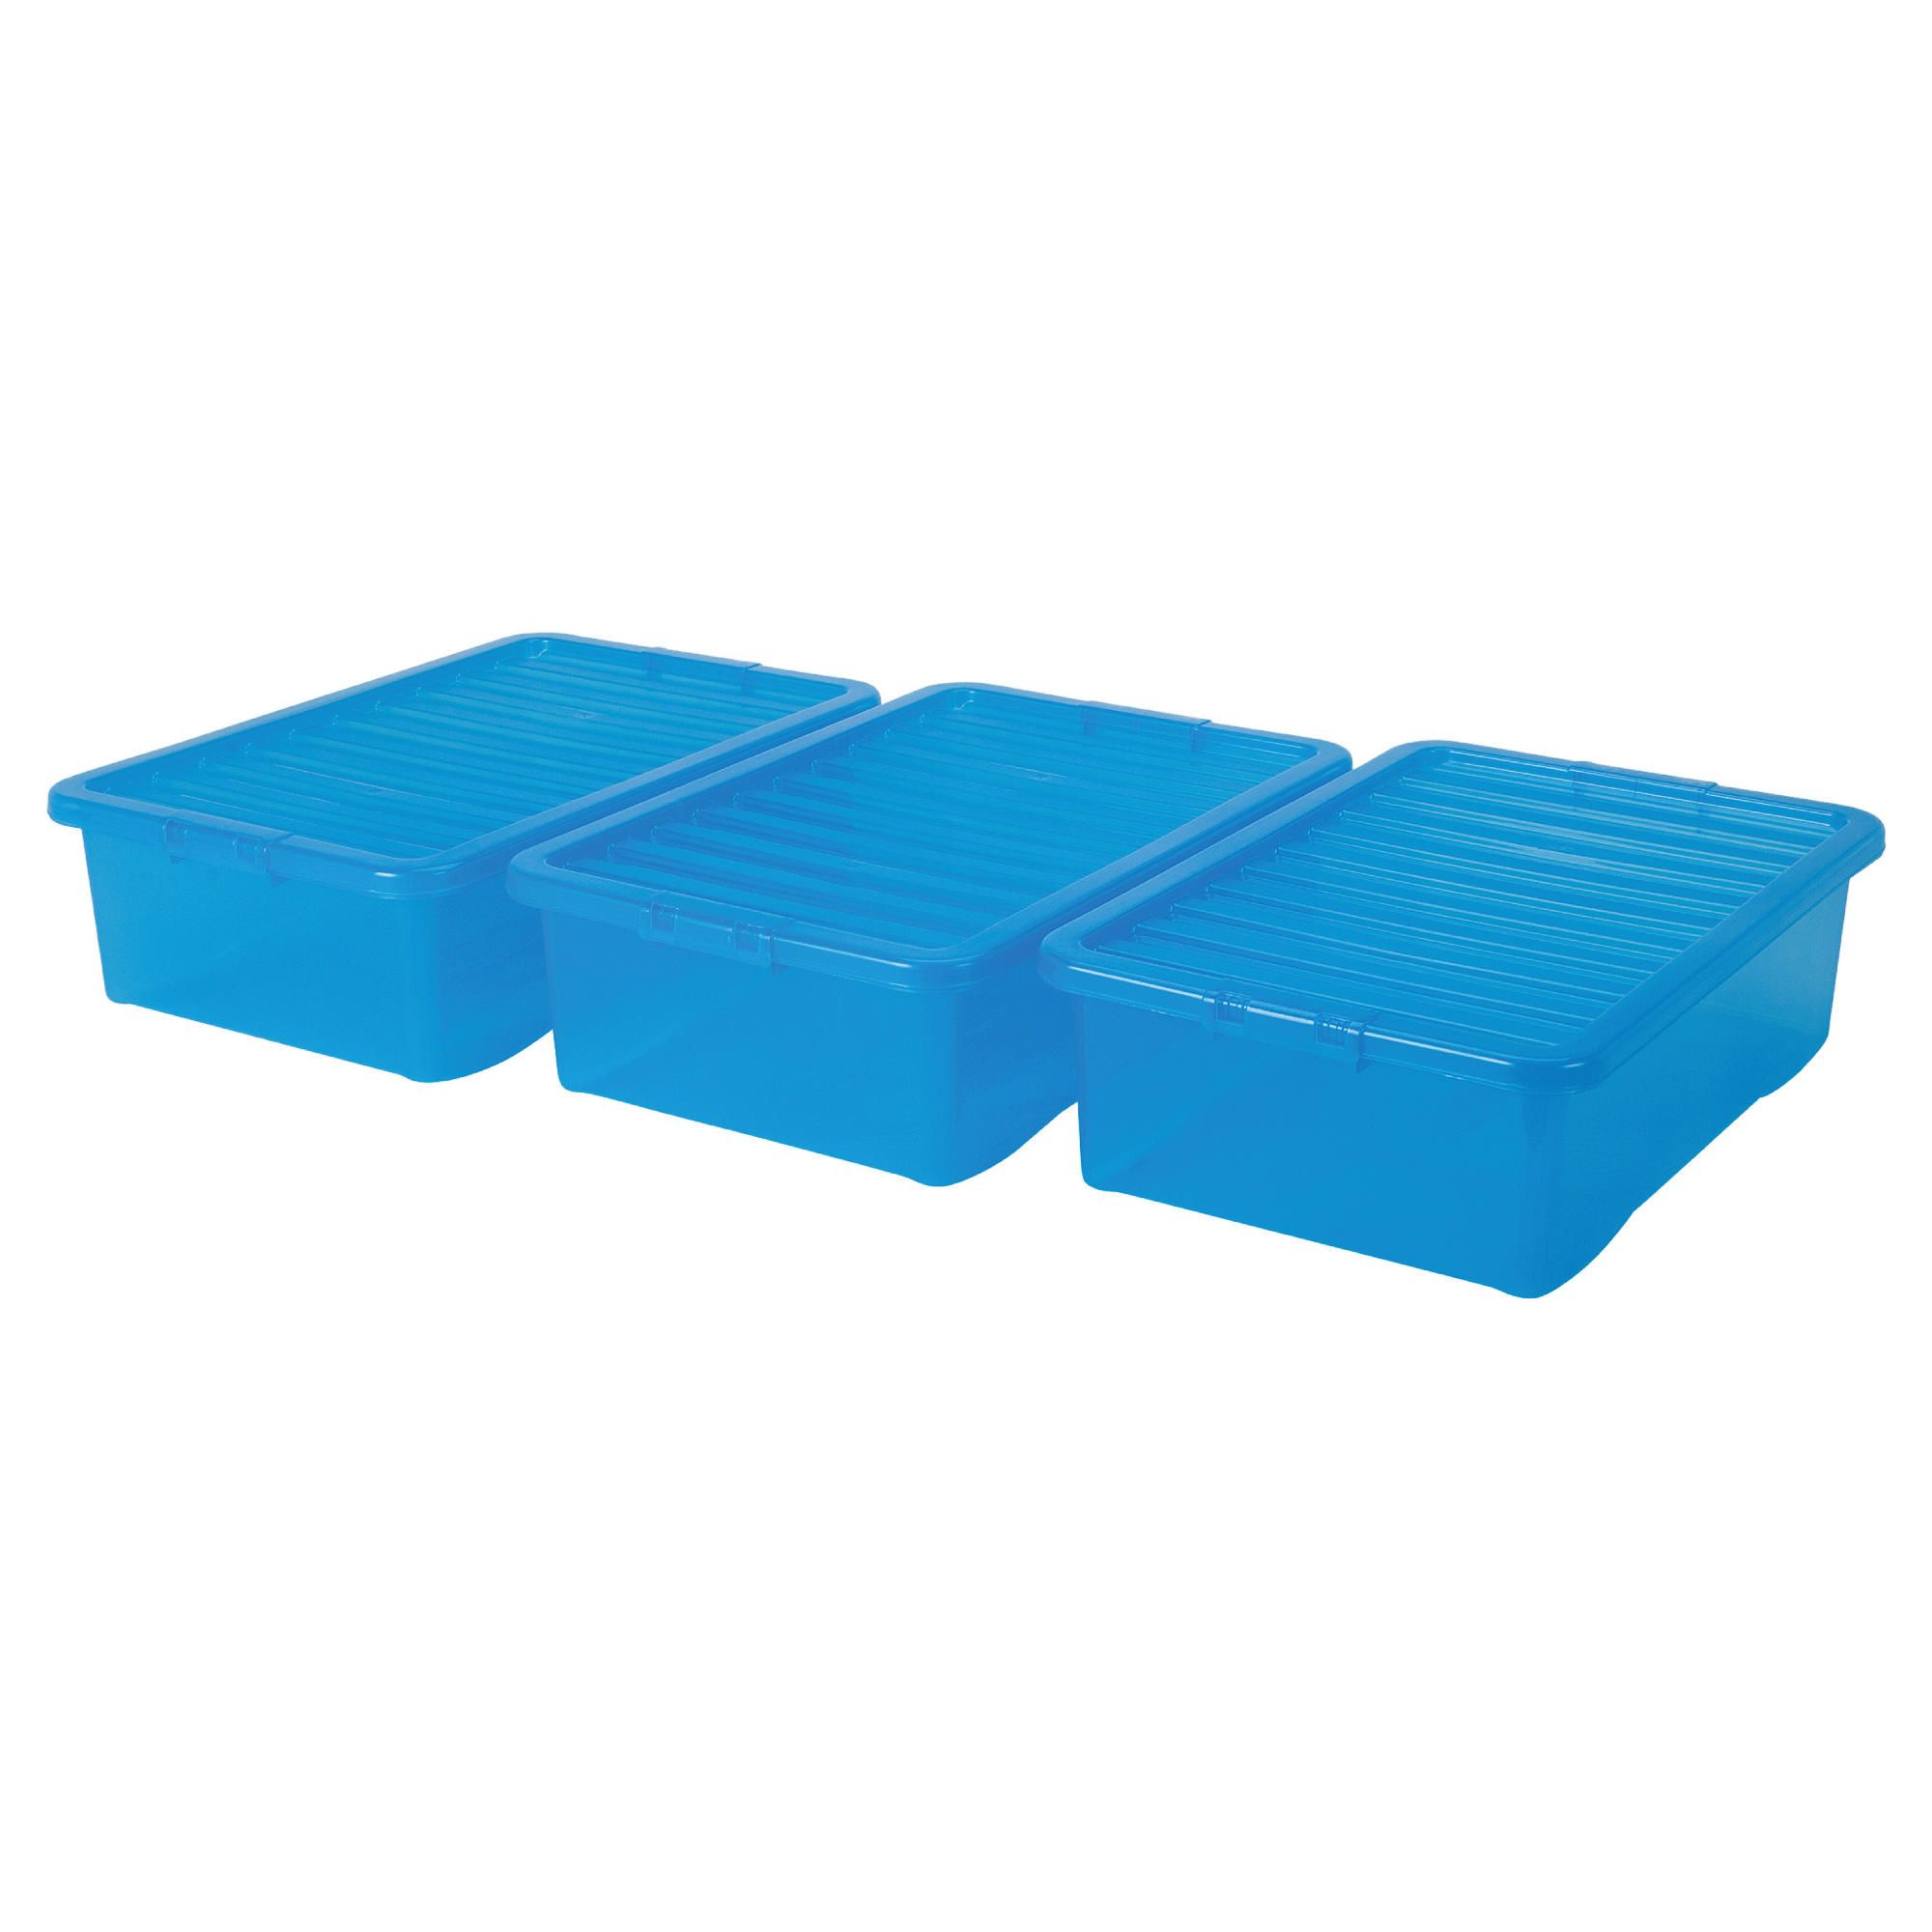 Wham crystal 32L underbed plastic storage box with lid, 3 pack blue